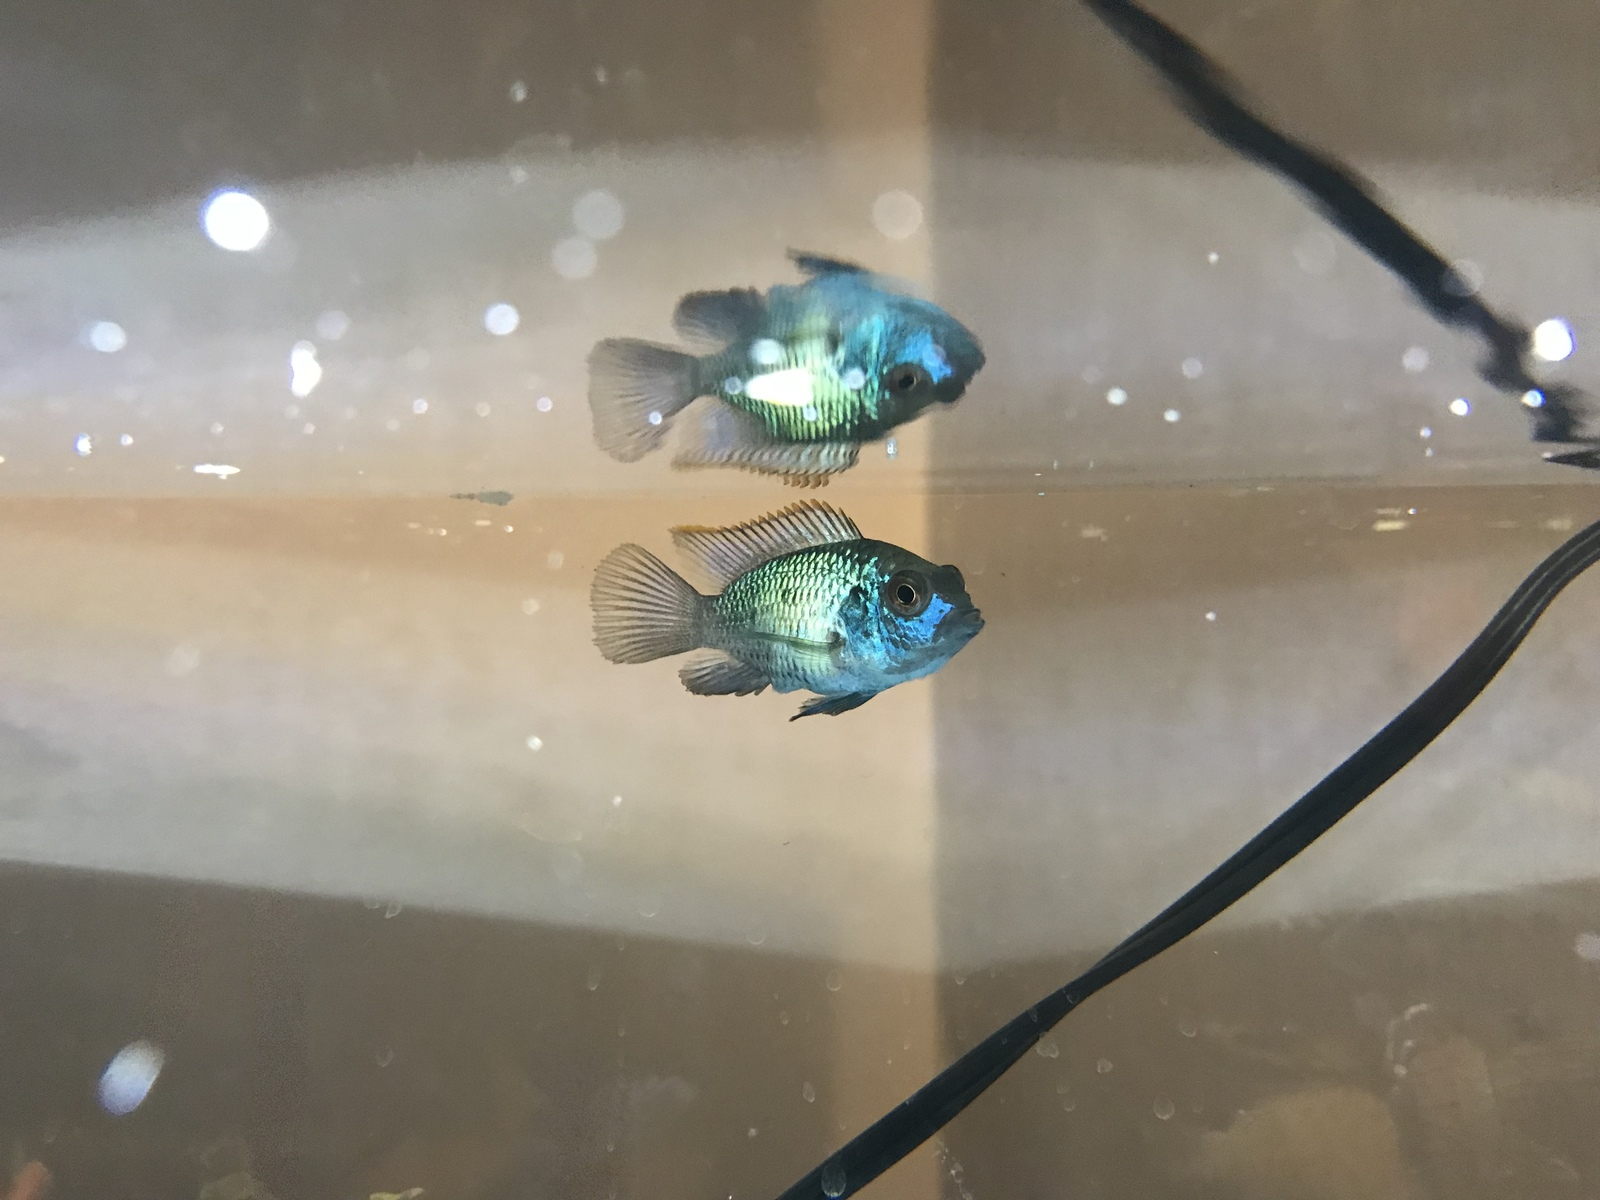 Don't know what type cichlids but it's amazing helps me | by H Samuel YILDIRIM